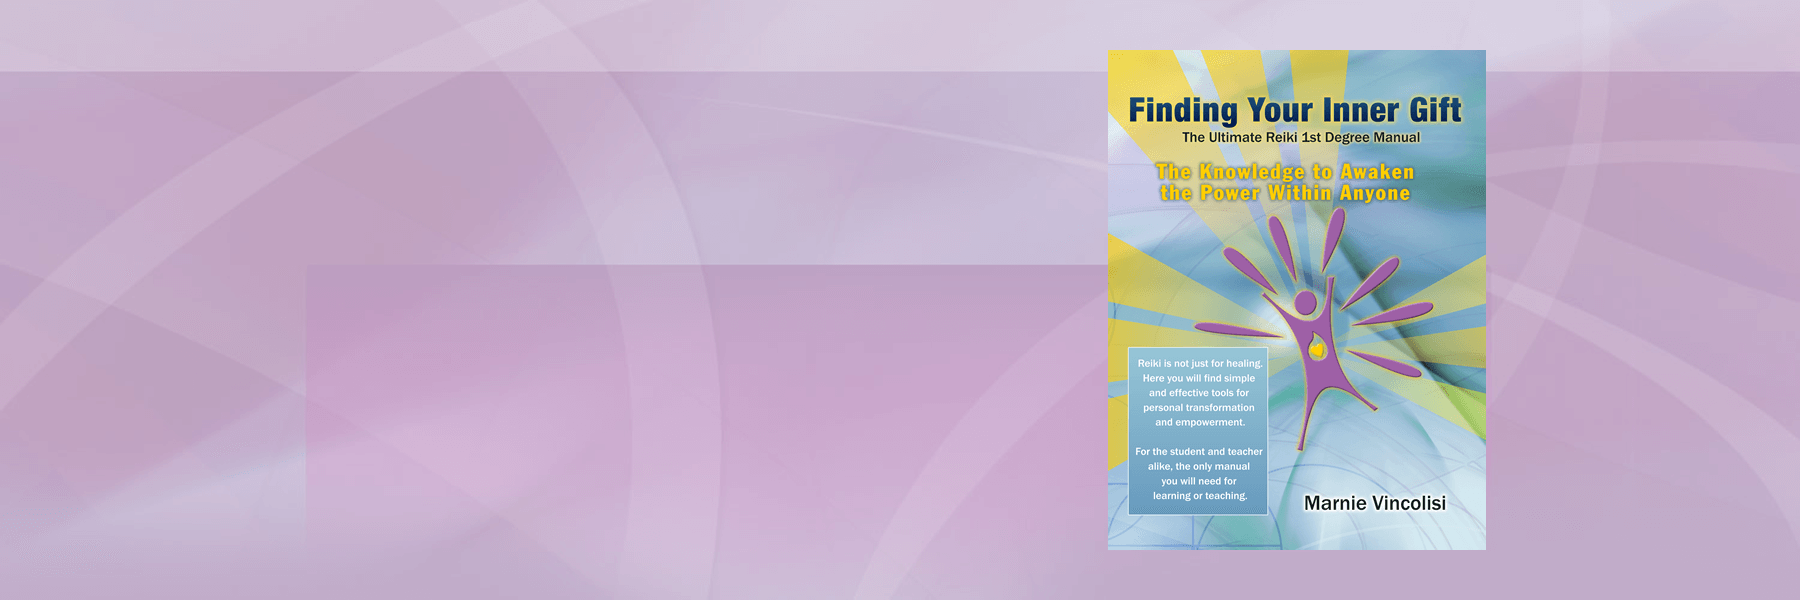 Finding Your Inner Gifts Book - Slider